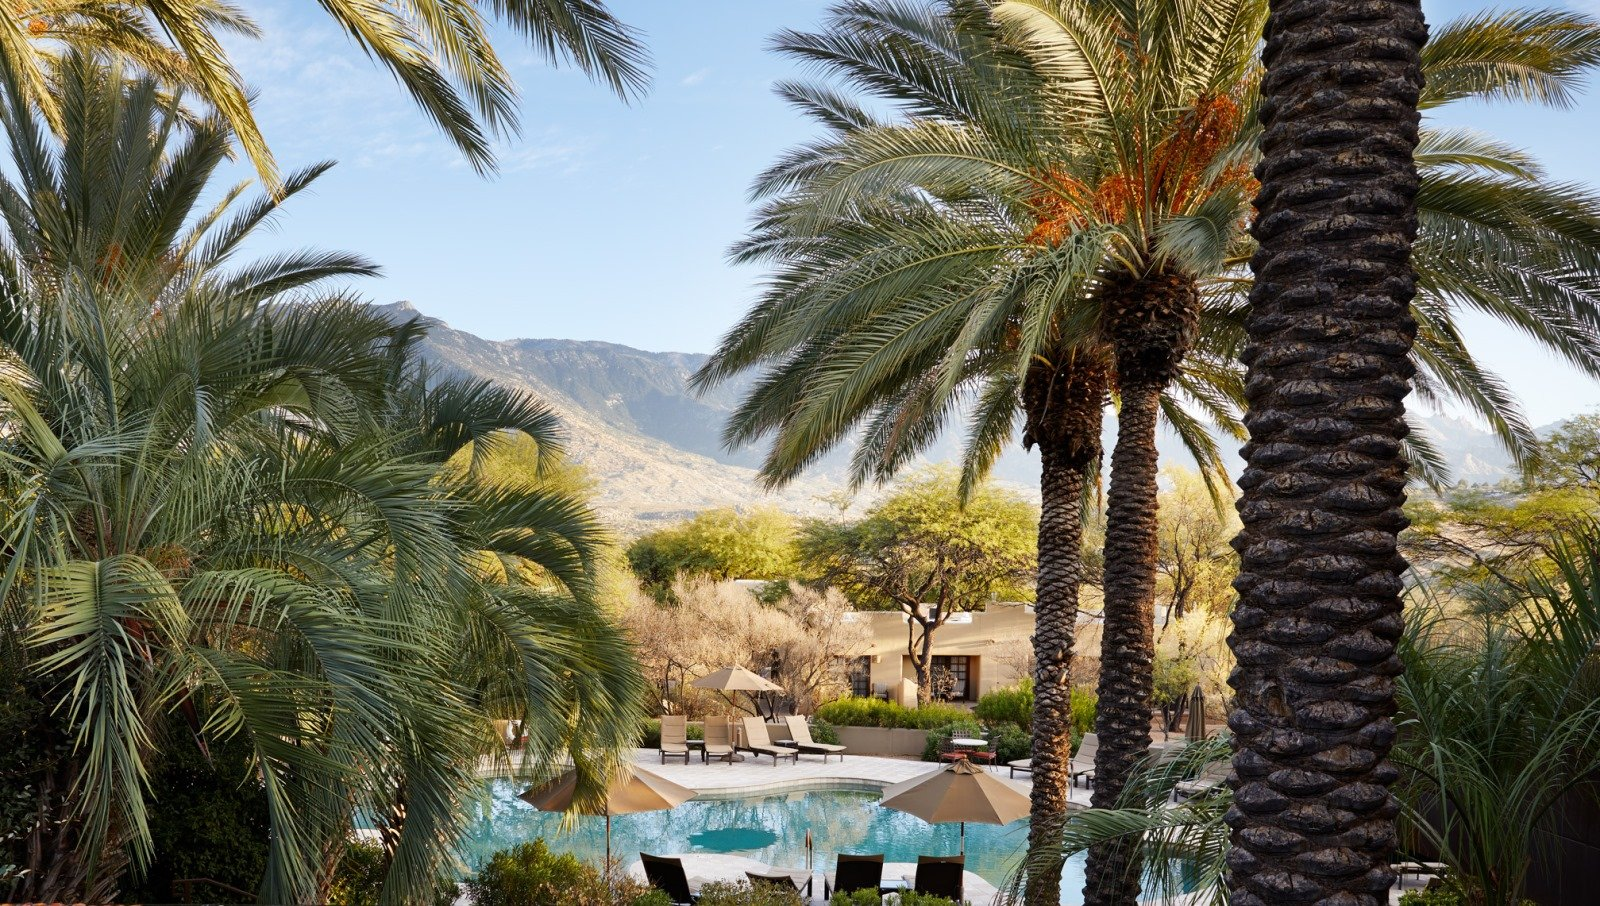 Top 11 Hotels In Tucson